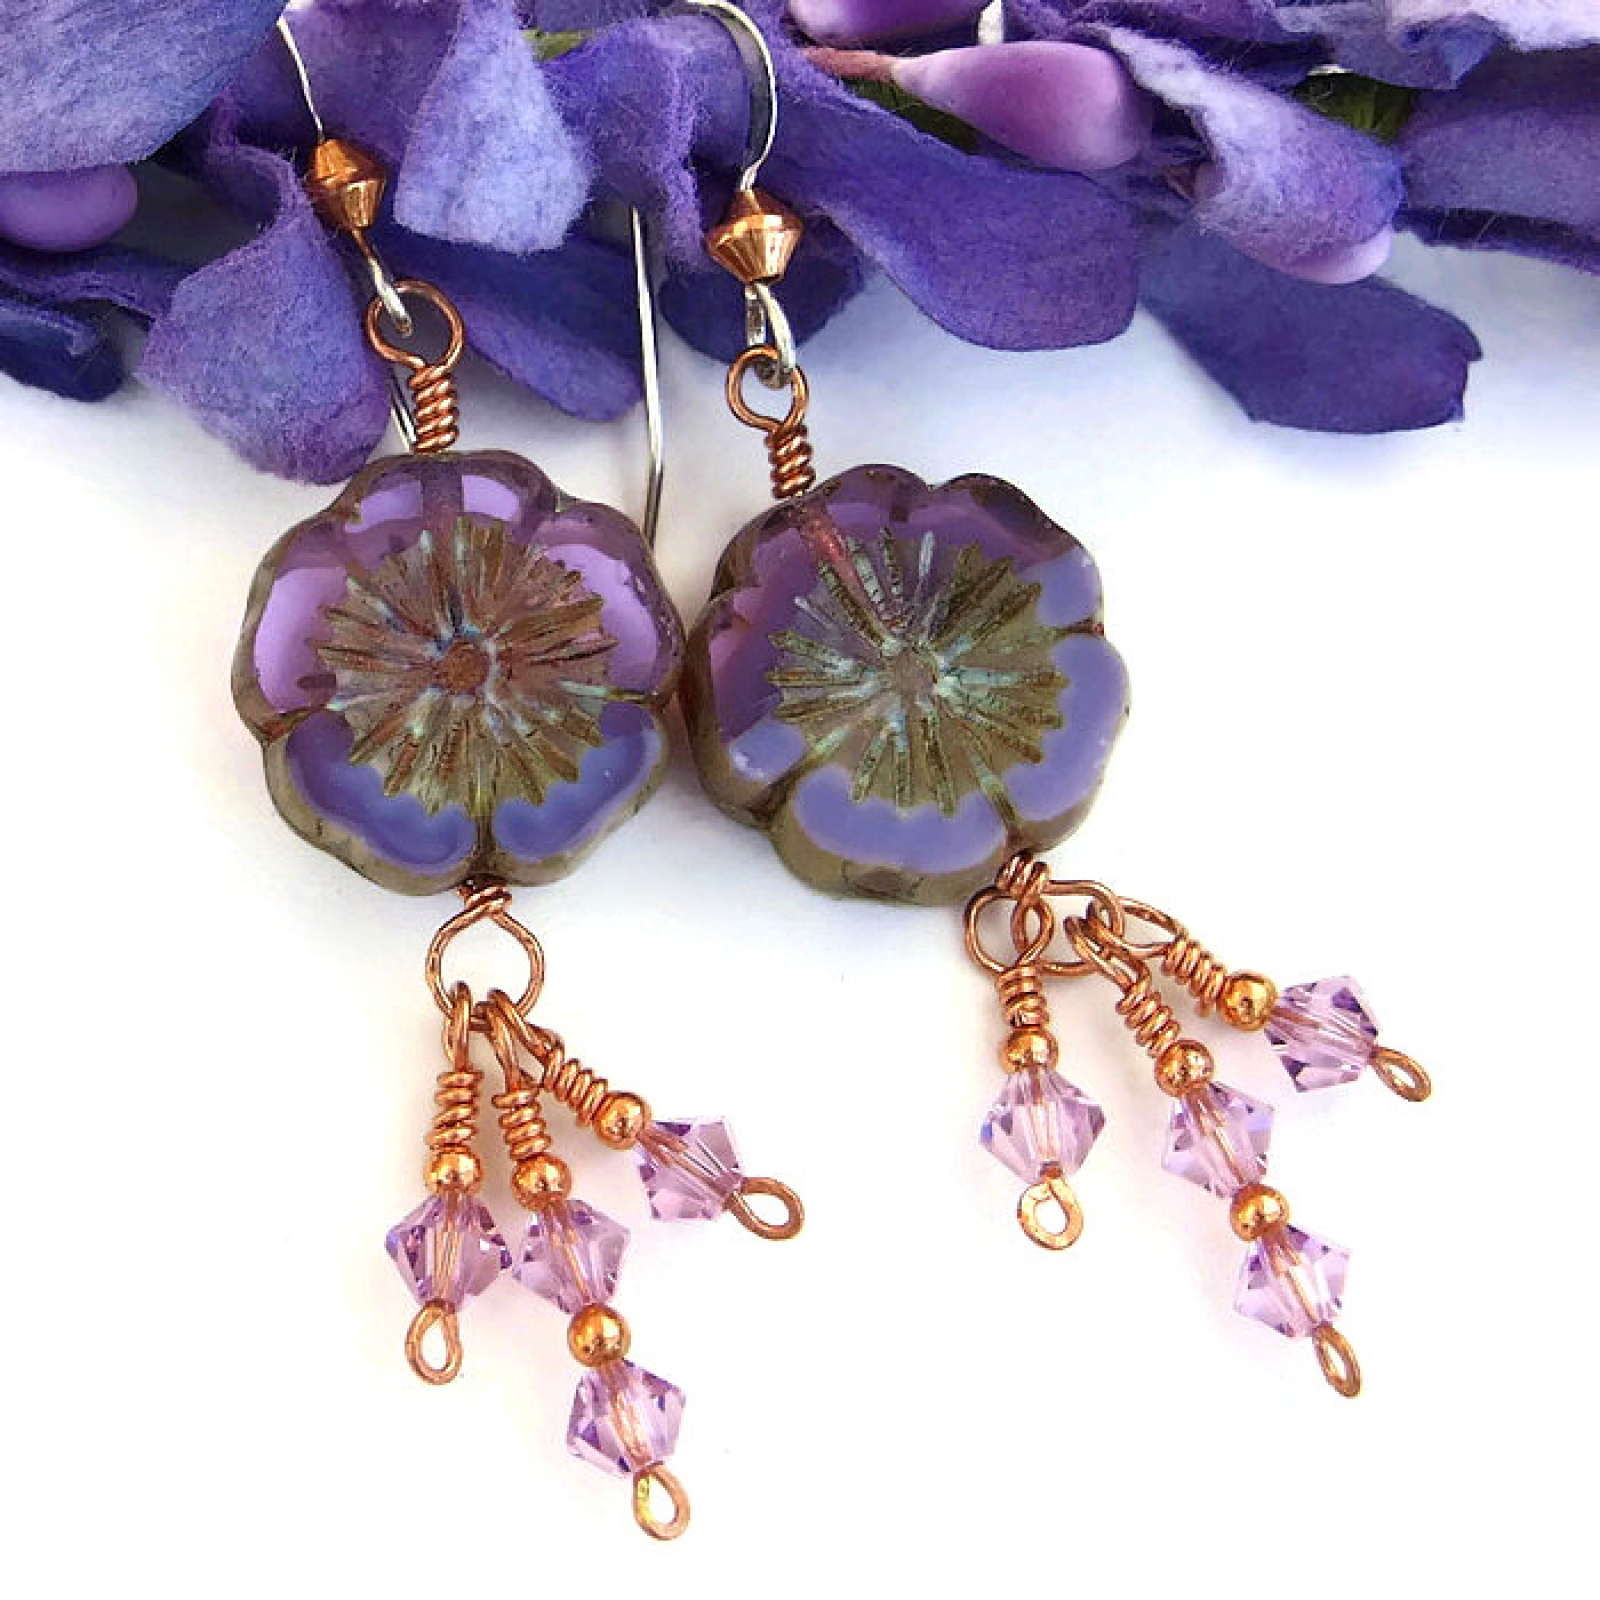 aria shop online earrings purple gavigan mini exclusive flower copy mignonne img madeline